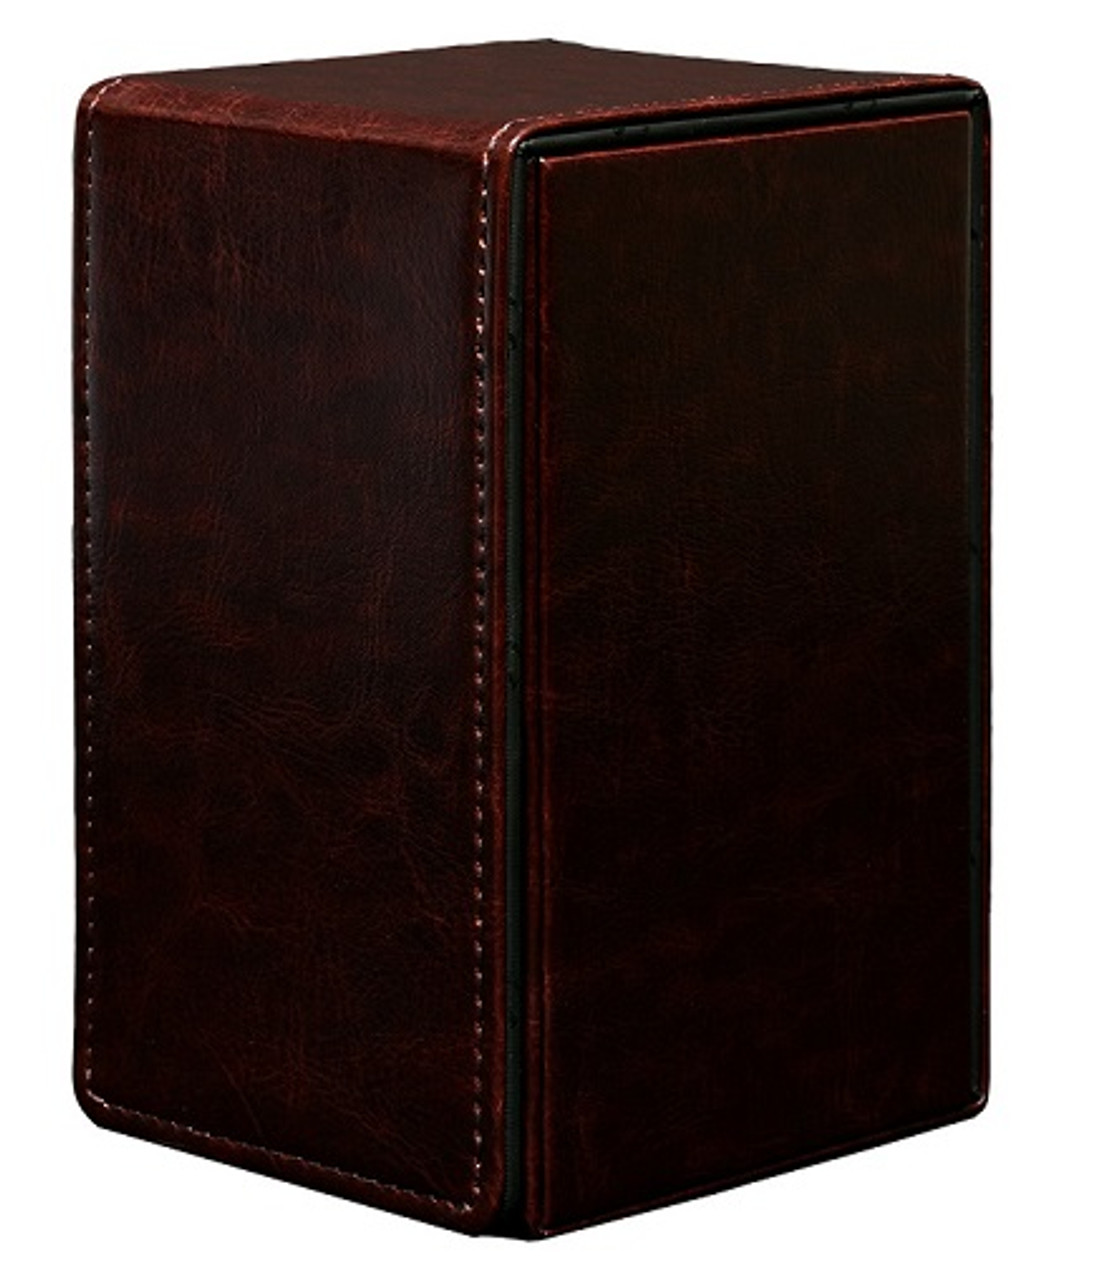 Deck Box - Alcove Tower Cowhide